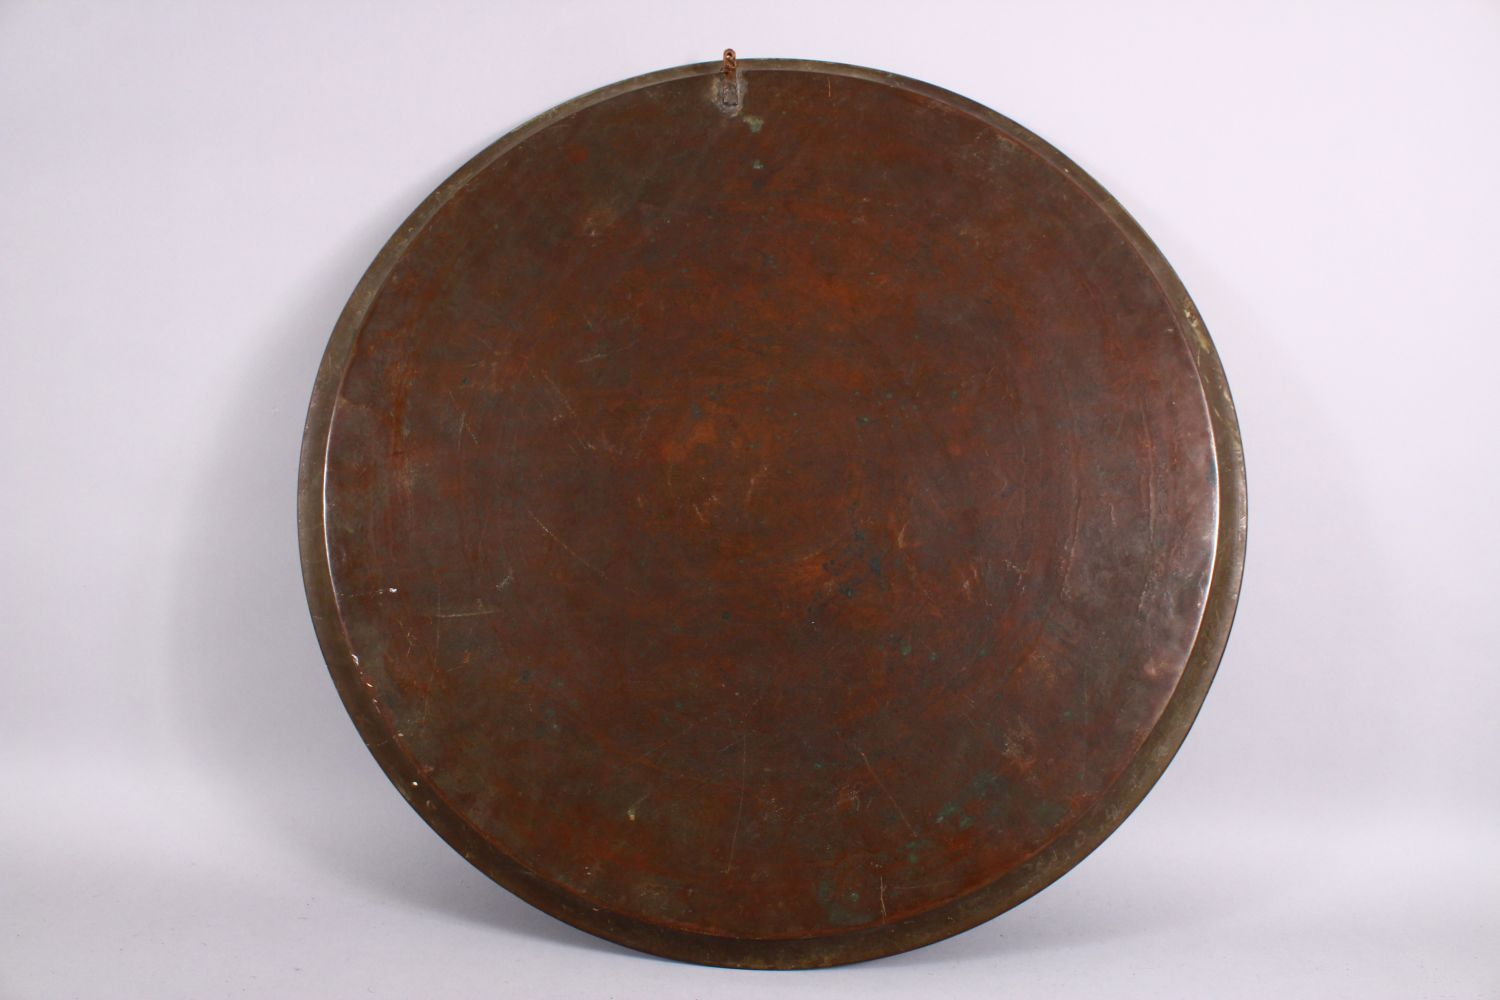 A LARGE 19TH CENTURY EGYPTIAN BRASS CHARGER / TRAY, with carved bands of calligraphy and motif - Image 7 of 7